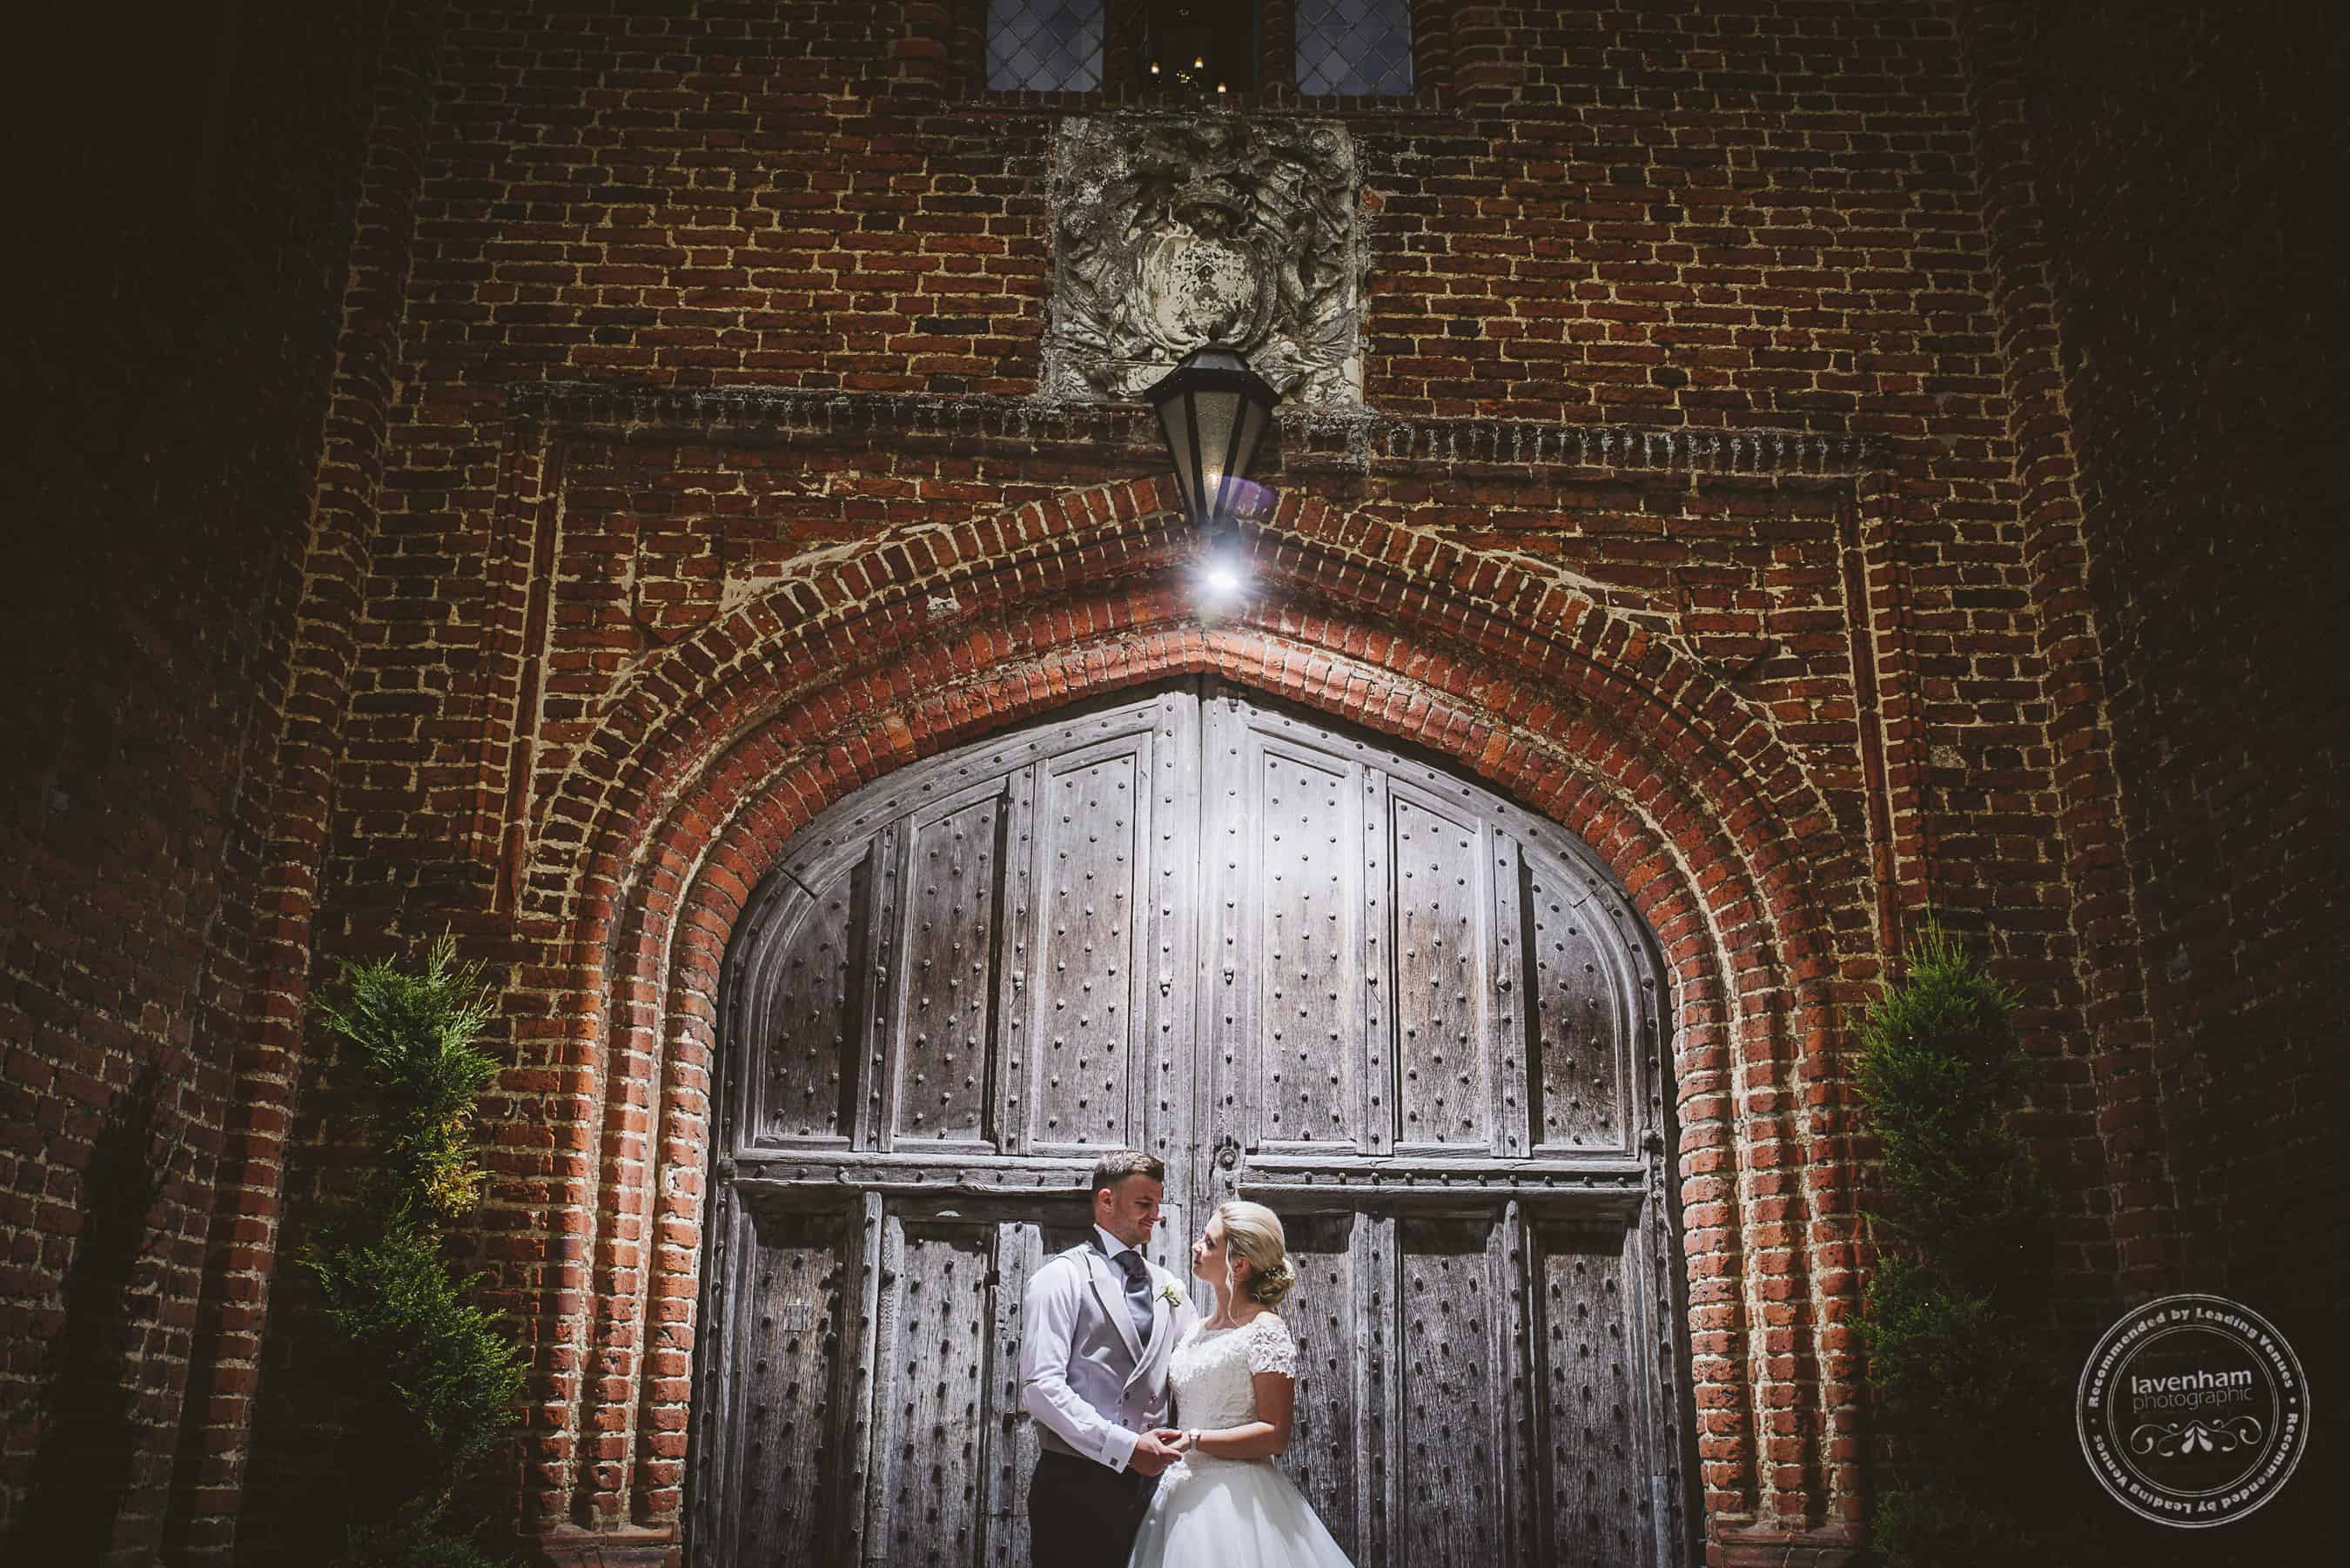 030618 Leez Priory Wedding Photography Lavenham Photographic 096